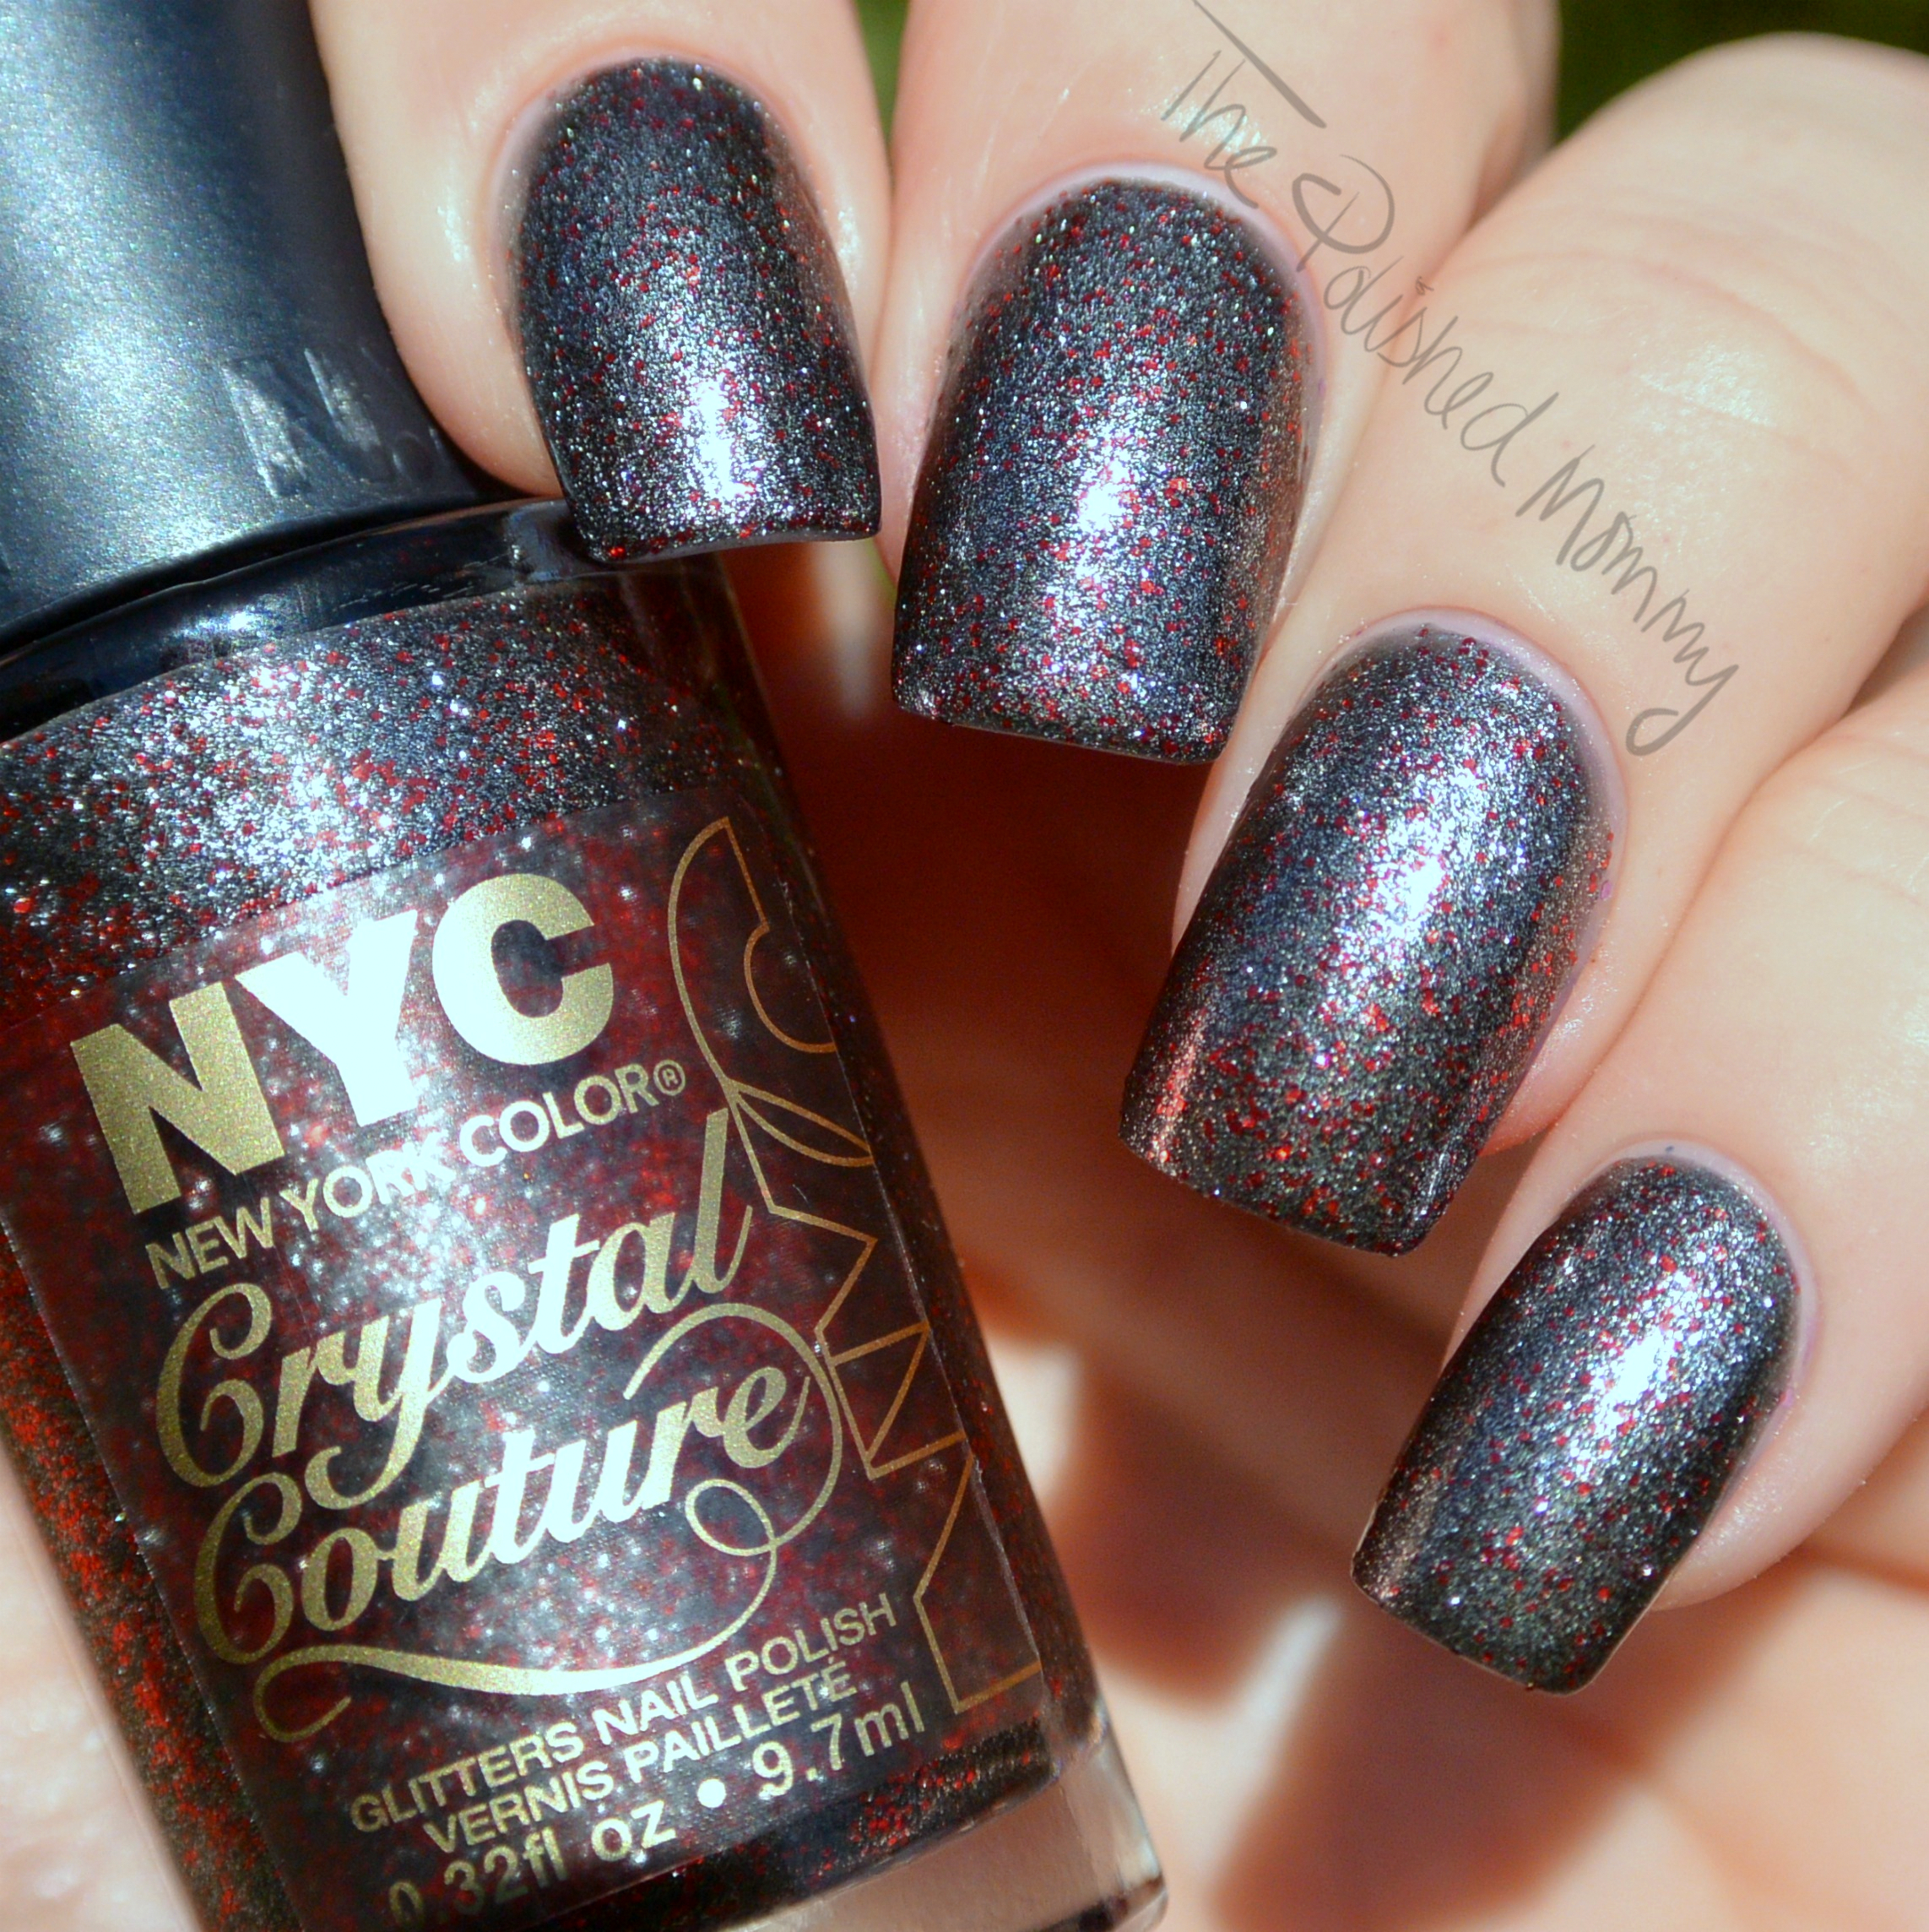 NYC Fashion Queen Crystal Couture Collection - The Polished Mommy